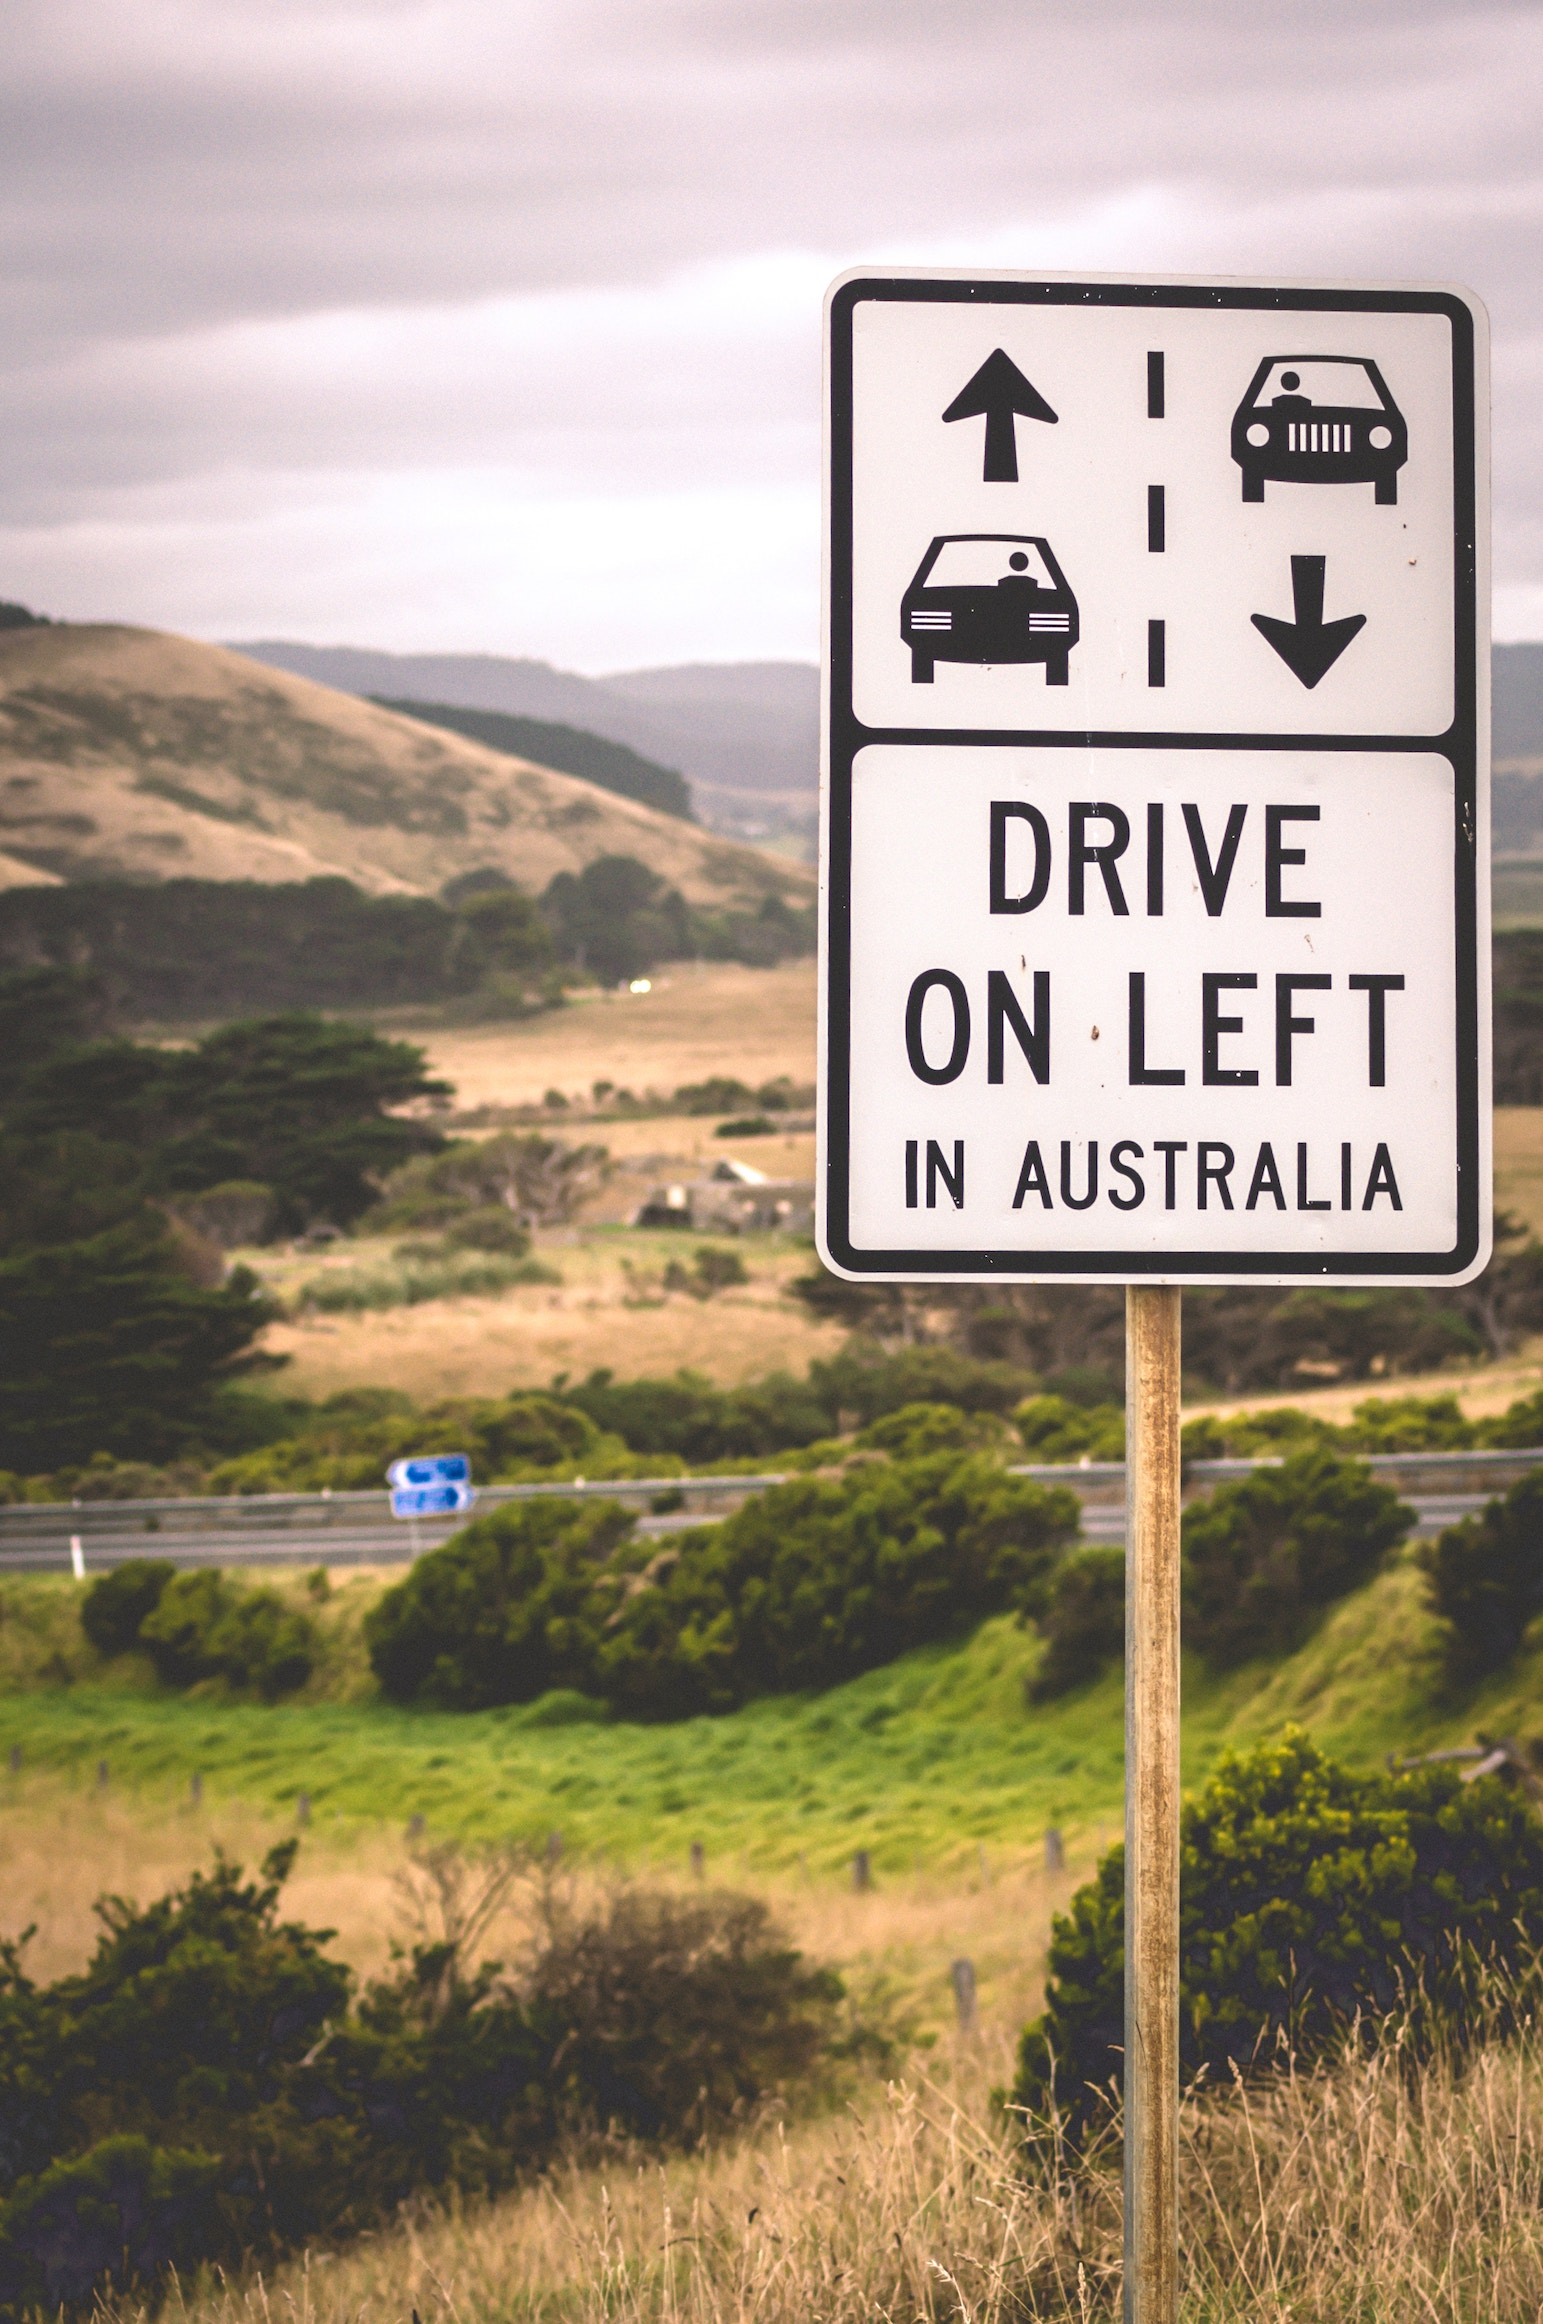 5 things you need to know before a trip to Australia